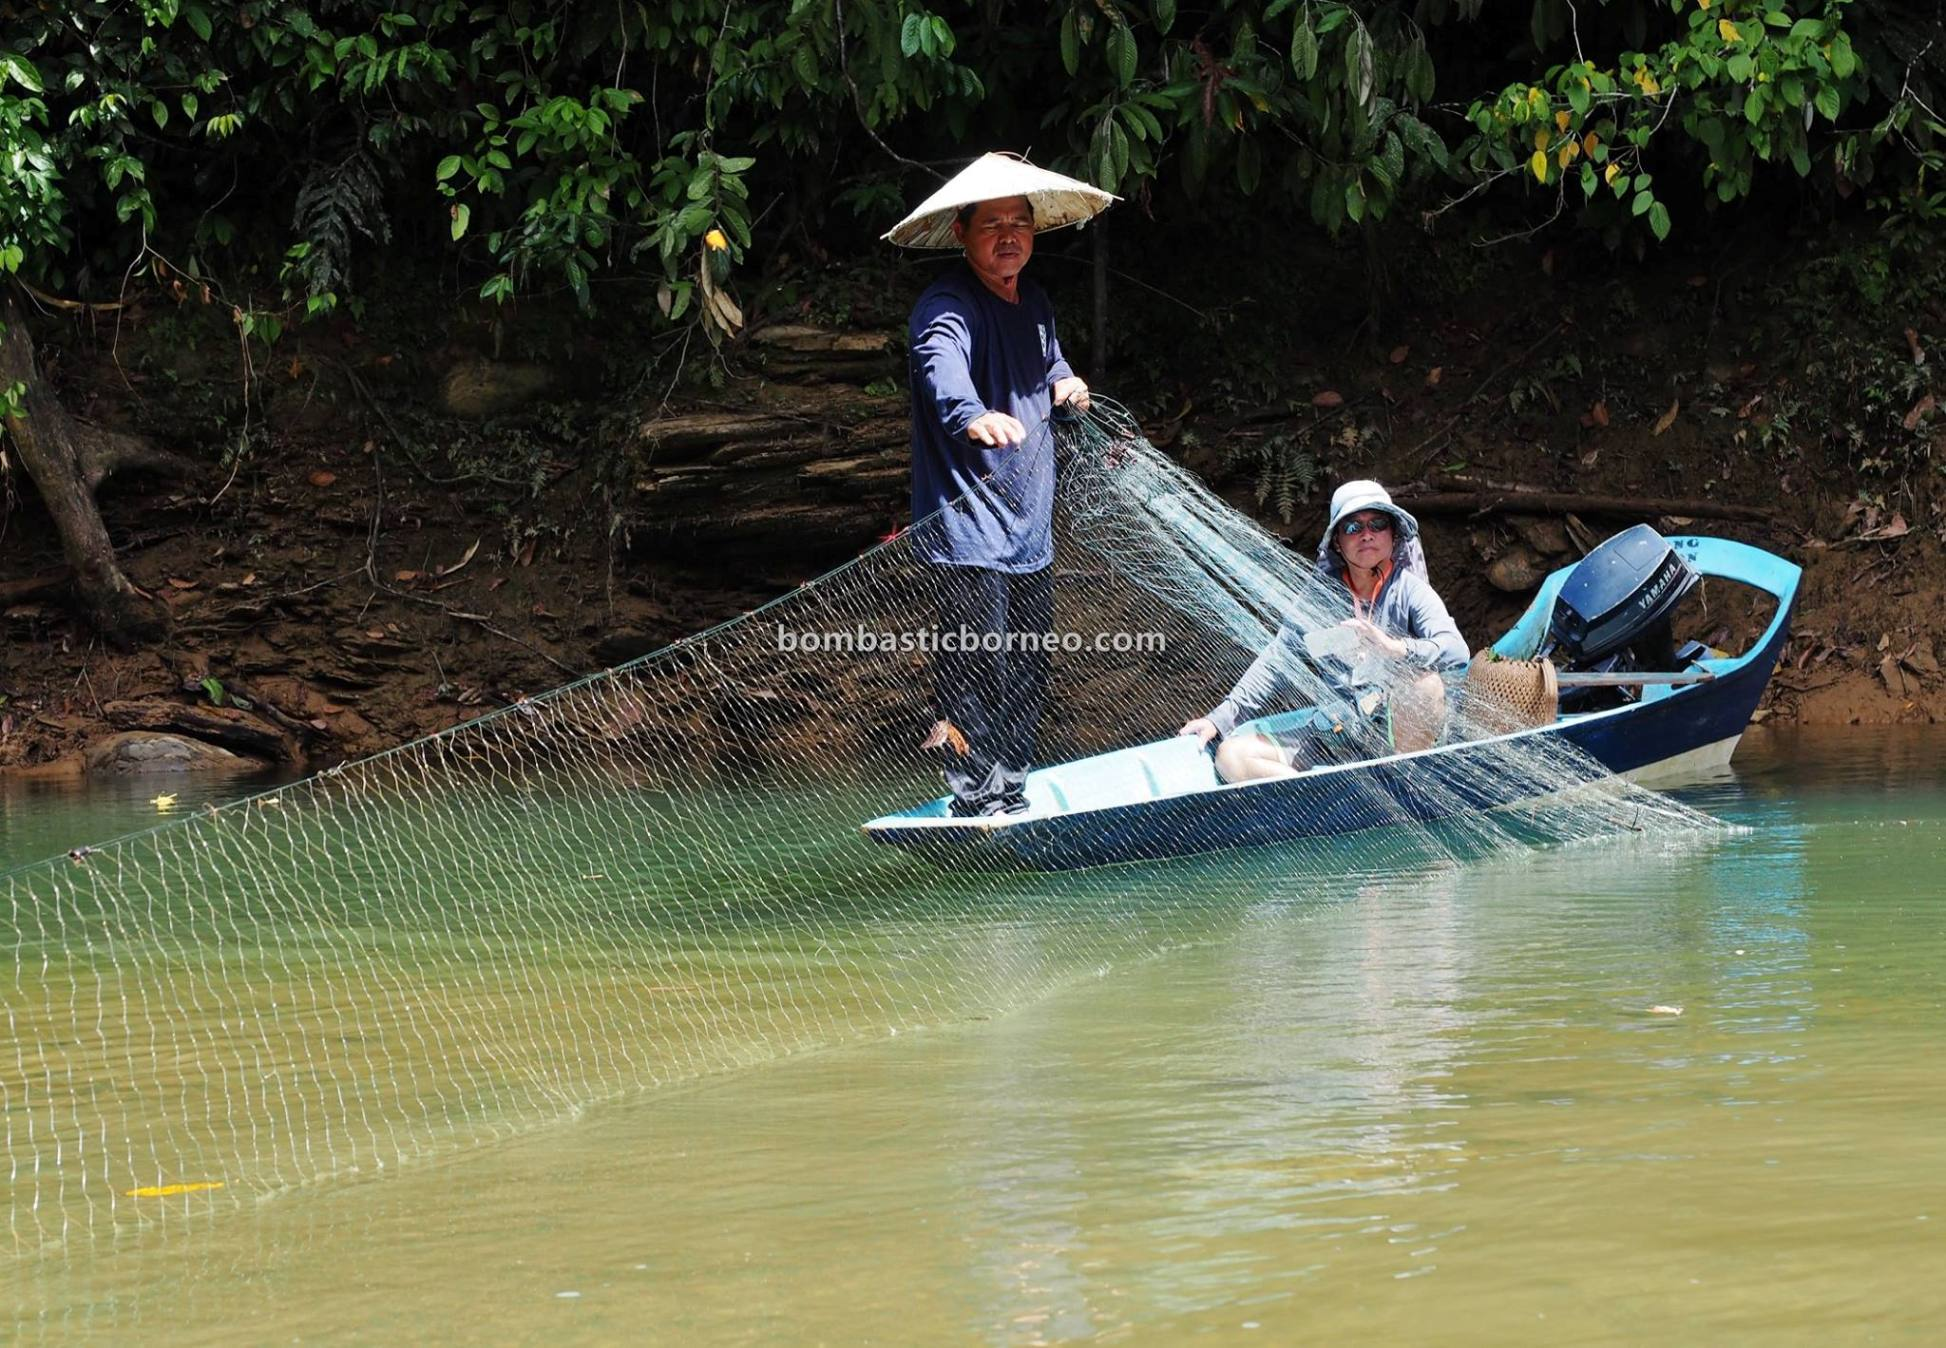 Bakun Hydroelectric Power Dam, Sungai Balui, traditional, fishing trip, Kapit, Malaysia, native, Orang Ulu, Tourism, tourist attraction, travel guide, Cross Border, Borneo, 探索婆罗洲游踪, 砂拉越钓鱼之旅, 马来西亚峇贡水坝,